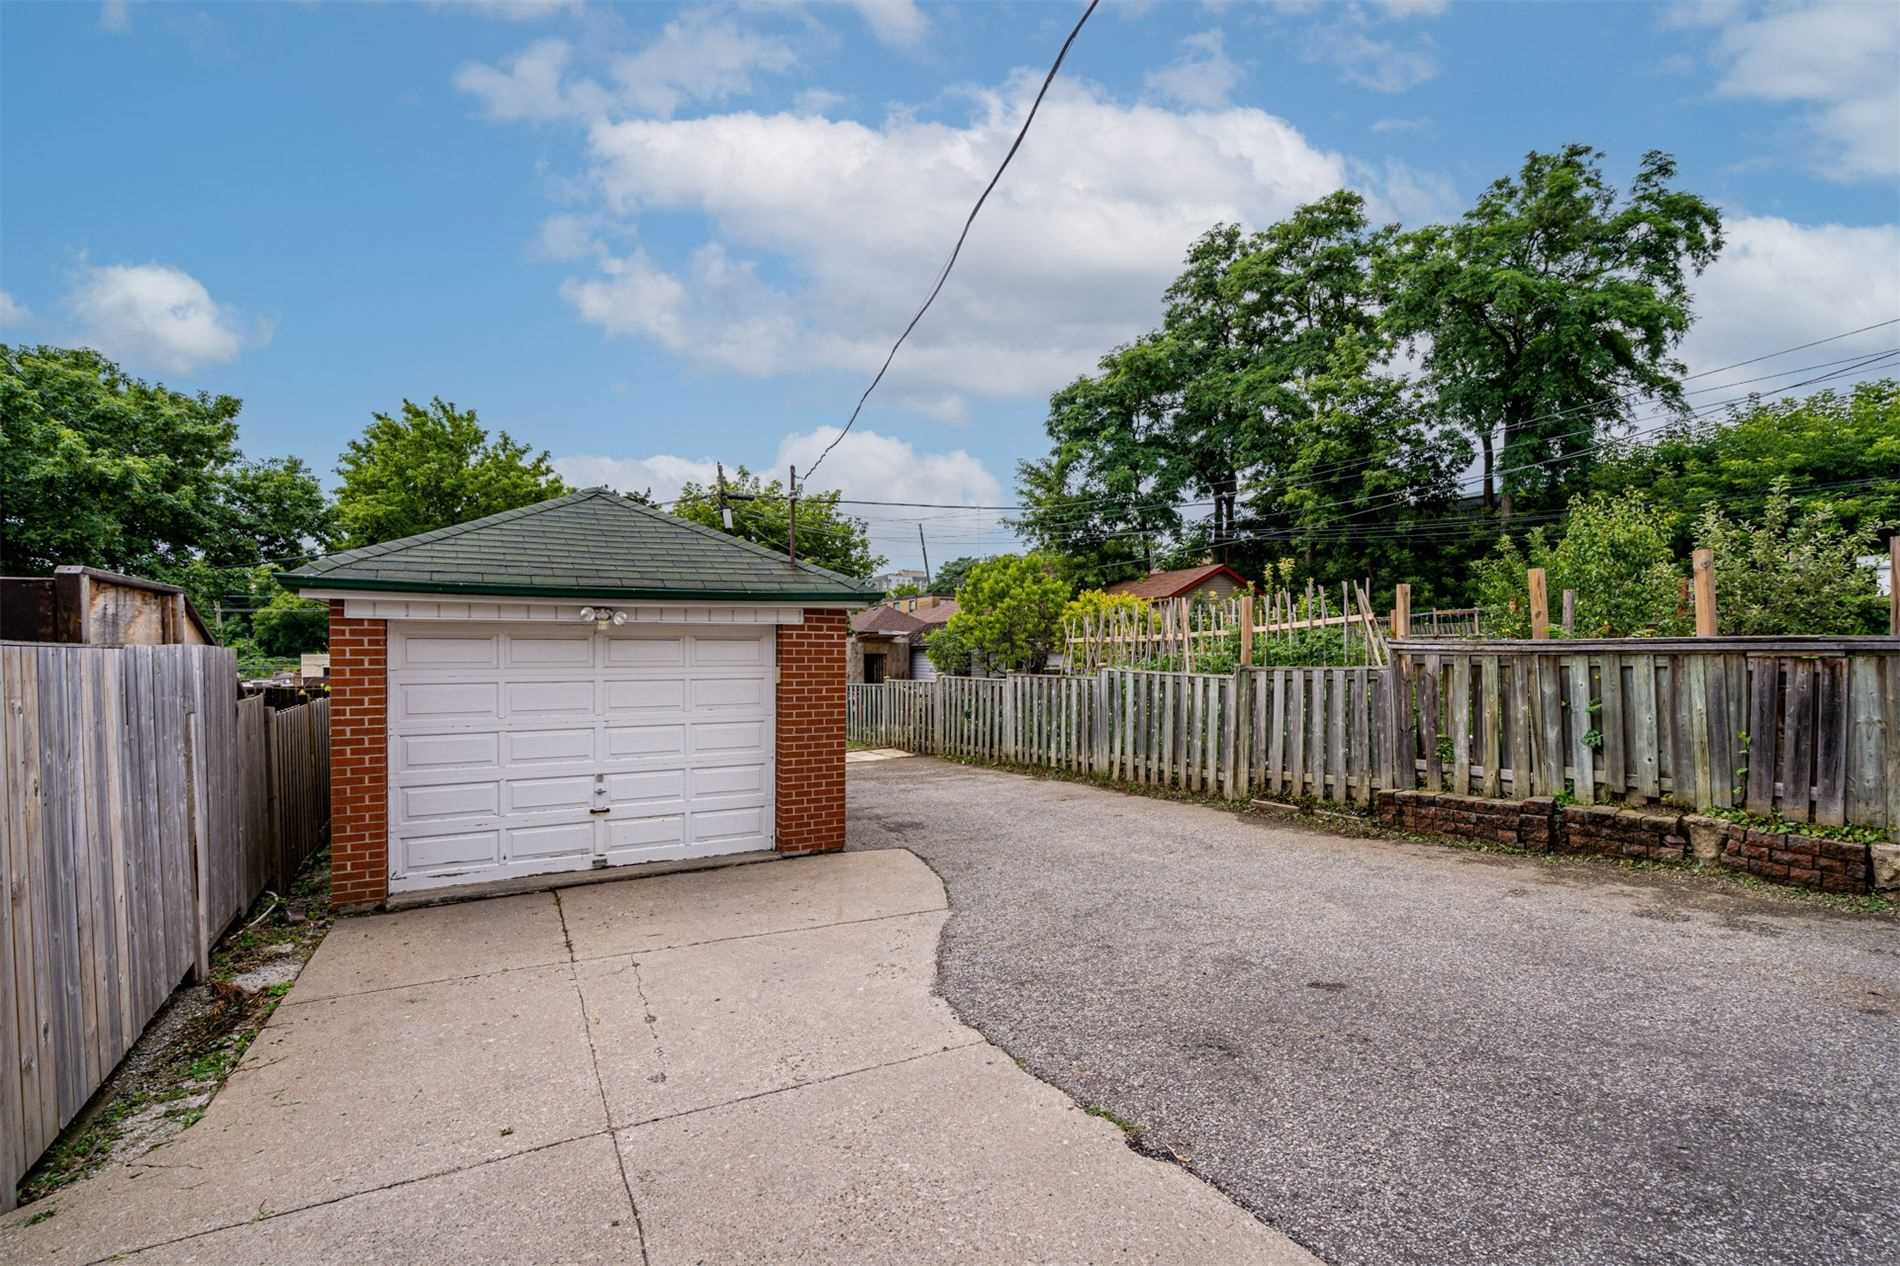 554 Caledonia Rd - Caledonia-Fairbank Detached for sale, 2 Bedrooms (W5305900) - #30